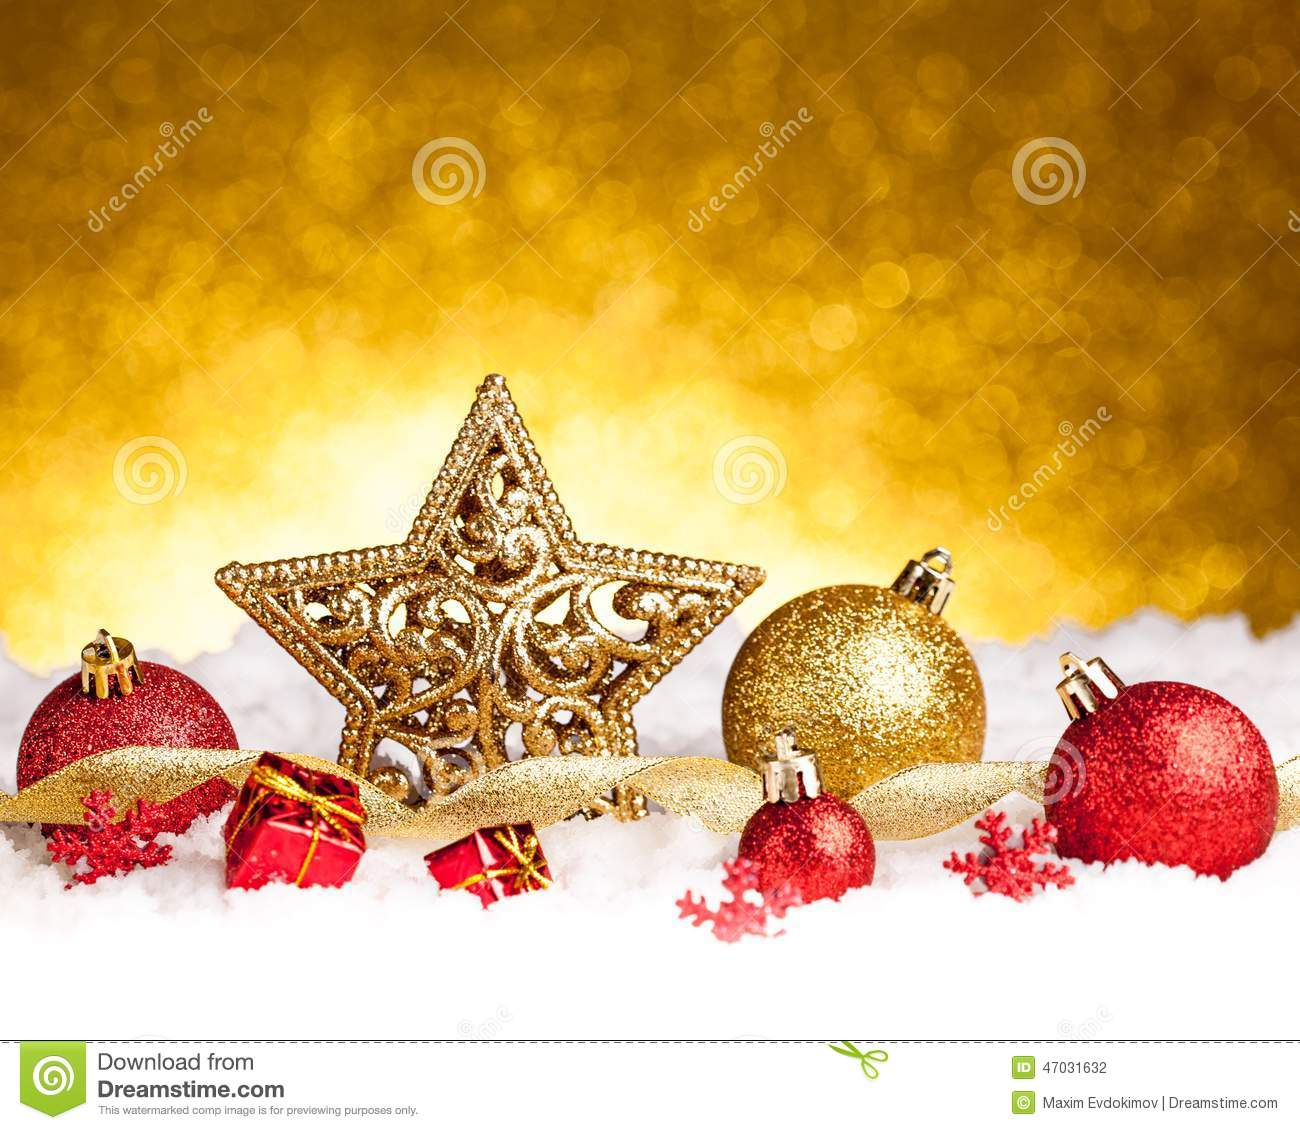 Gold and red ornaments - Golden Christmas Fir Star Decoration With Gold And Red Ornaments